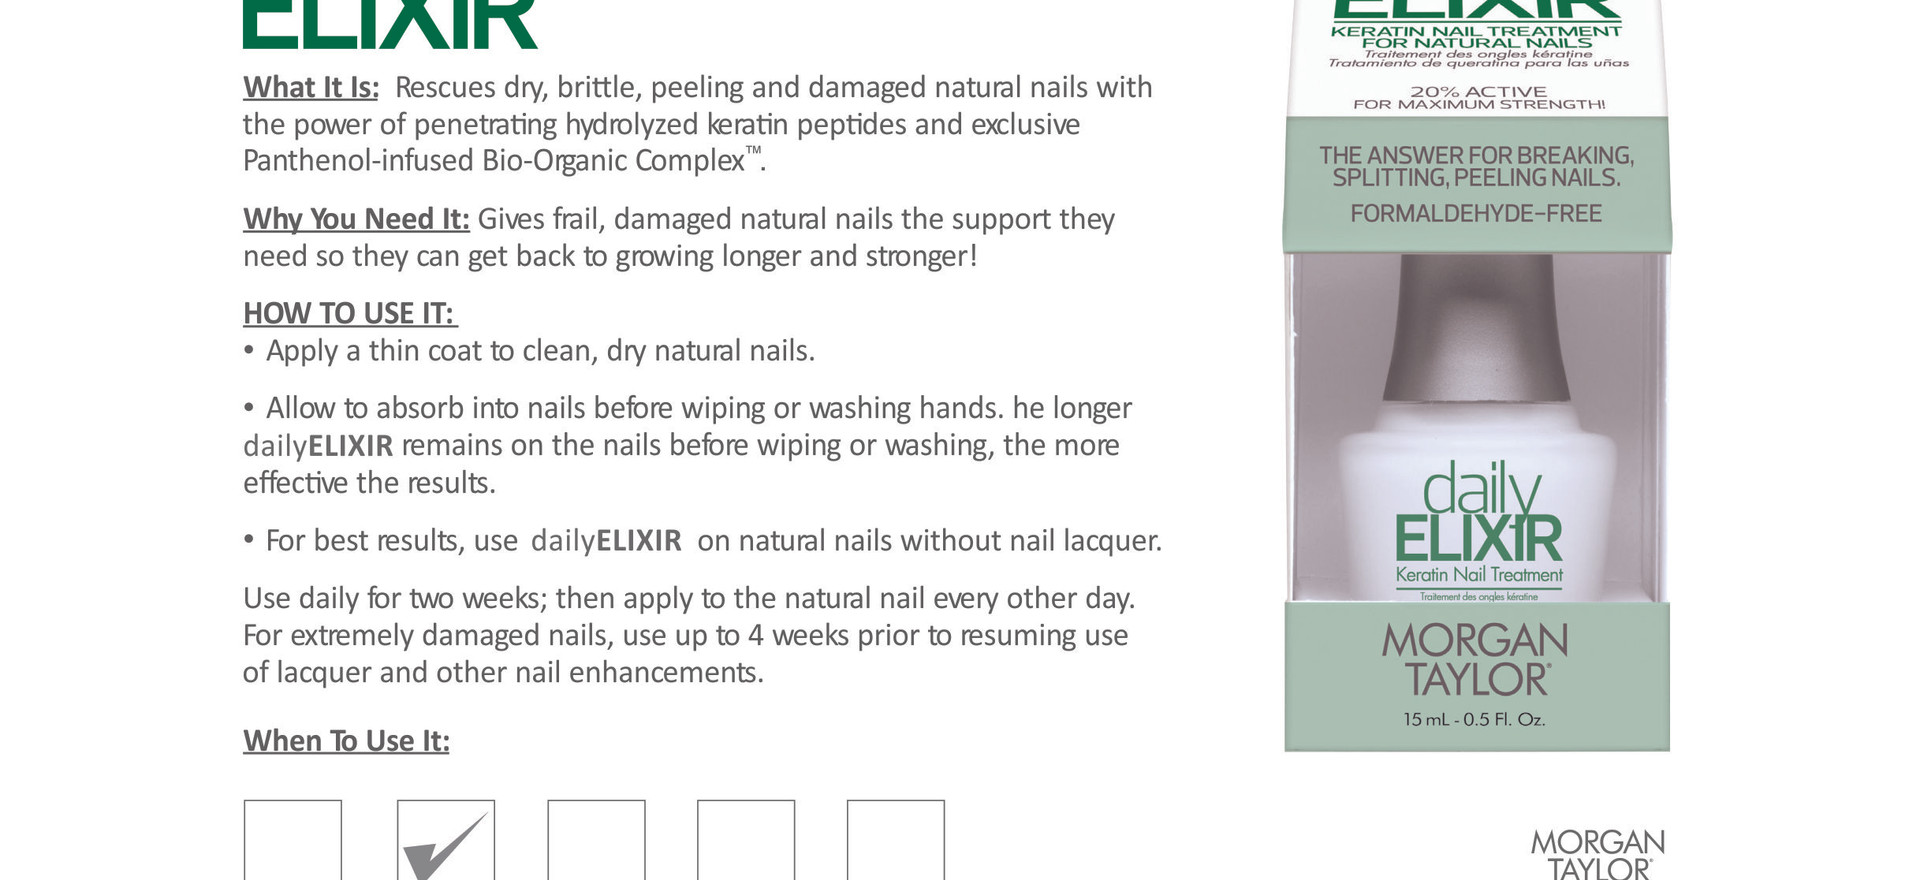 THE NATURAL NAIL MIRACLE IS HERE